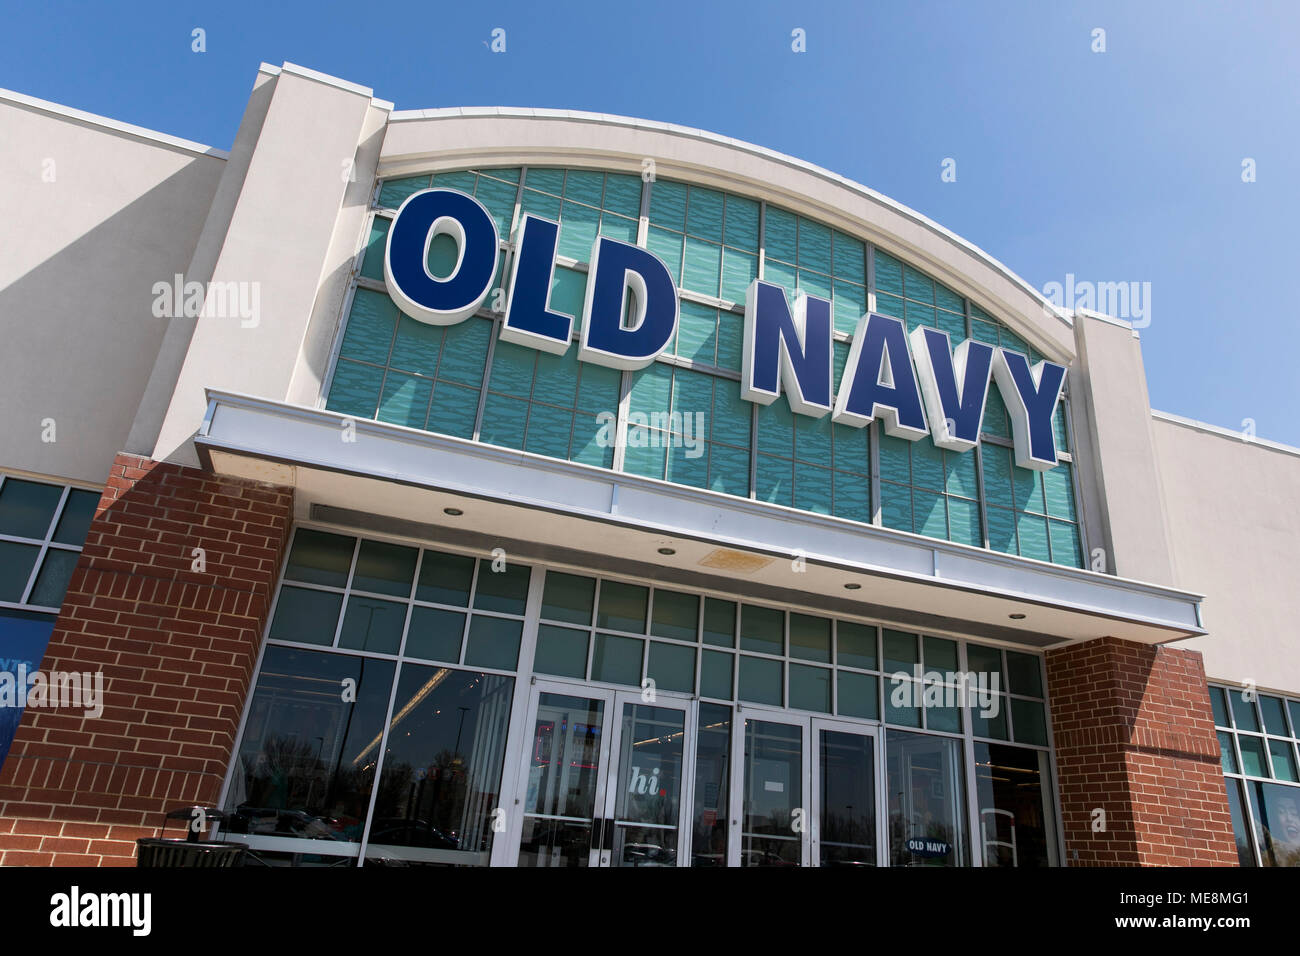 A logo sign outside of a Old Navy retail store location in Columbia, Maryland on April 20, 2018. - Stock Image